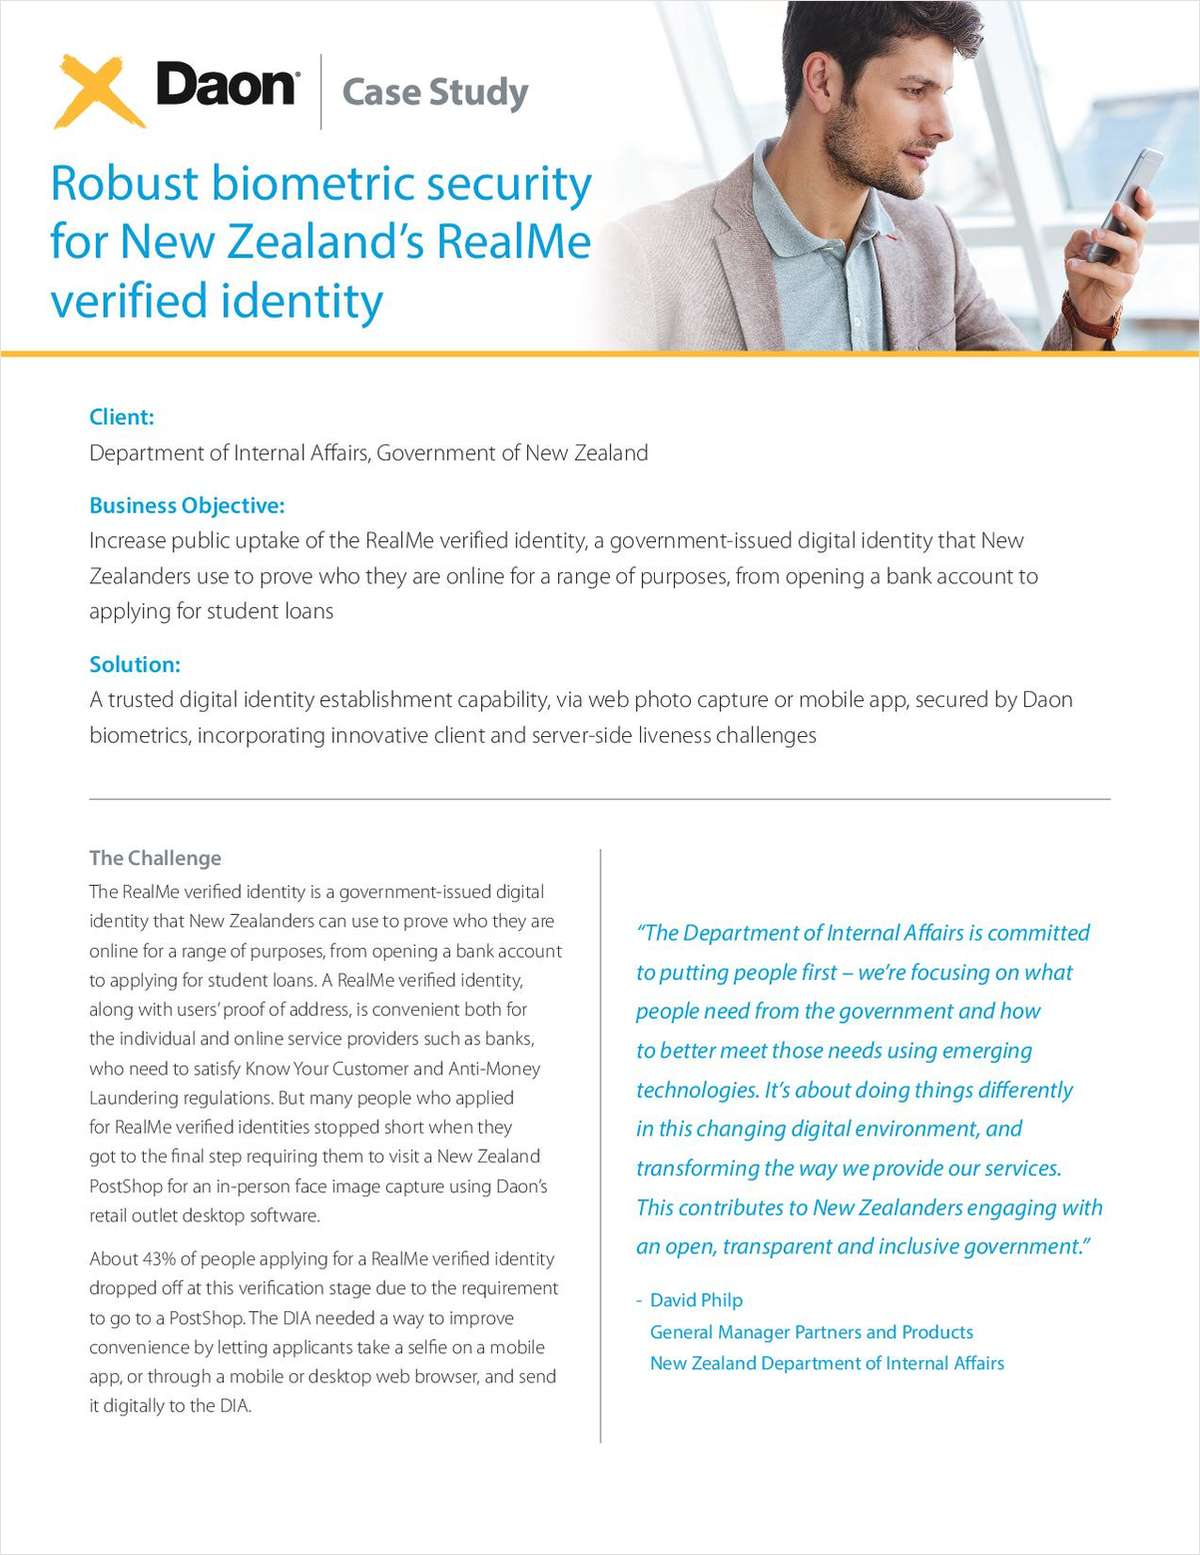 How Kiwibank and the New Zealand Government Delivered Frictionless Digital Onboarding with No Compromise on Security